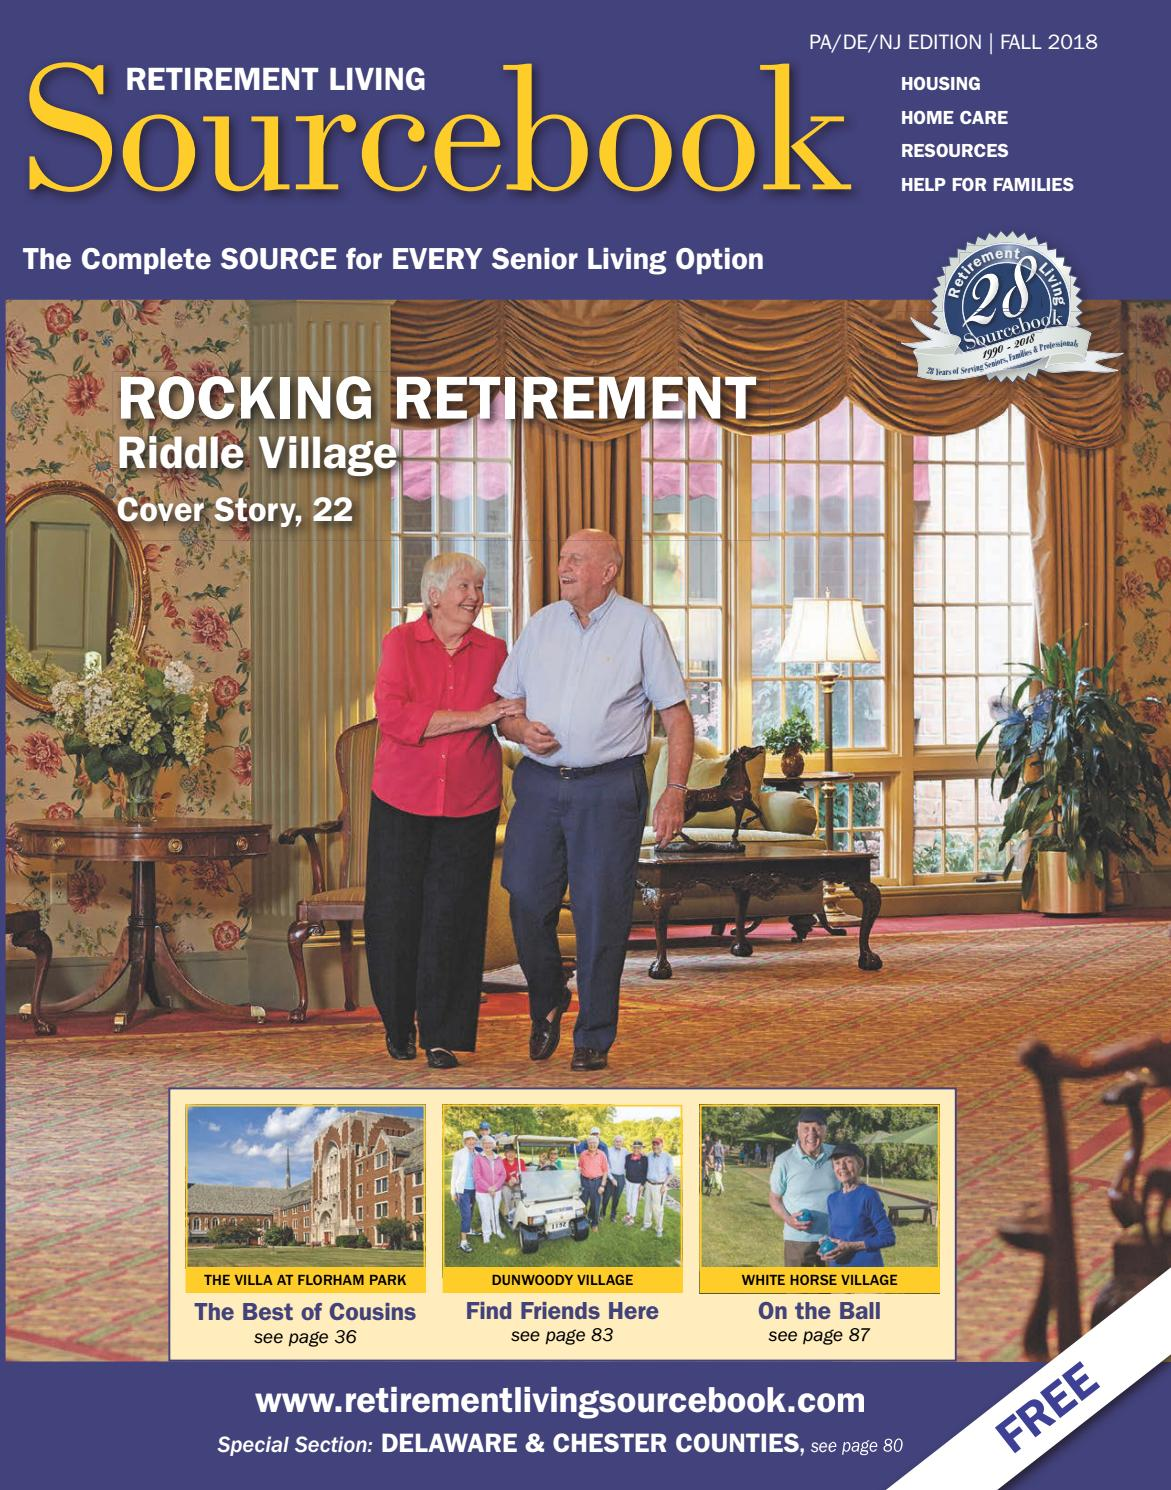 Retirement Living Sourcebook PA DE NJ Fall 2018 by Retirement Living  Sourcebook - issuu